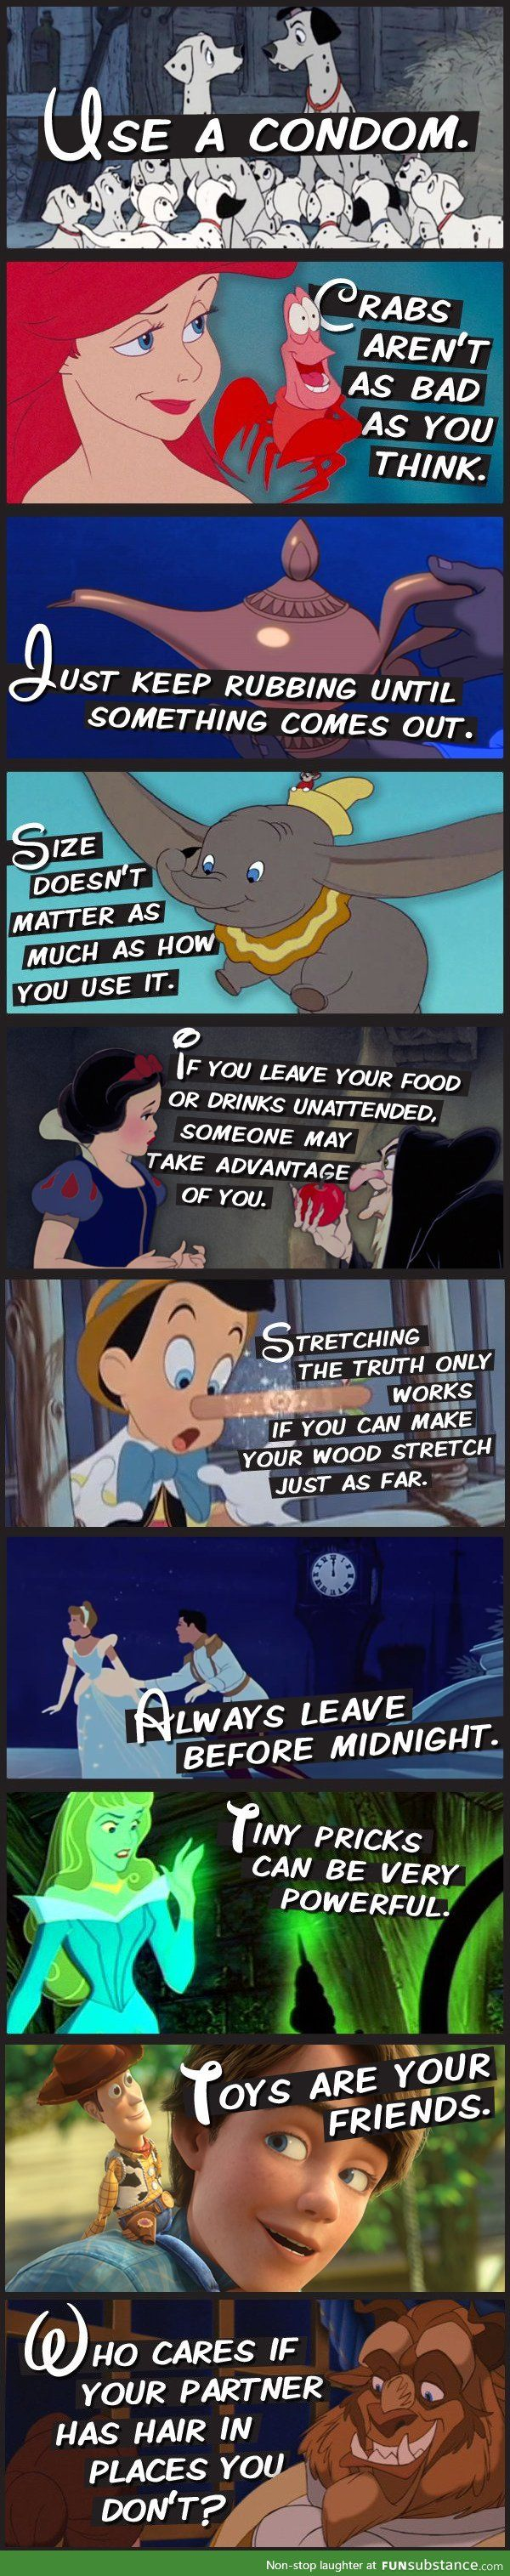 10 Lessons we can learn from Disney.lol